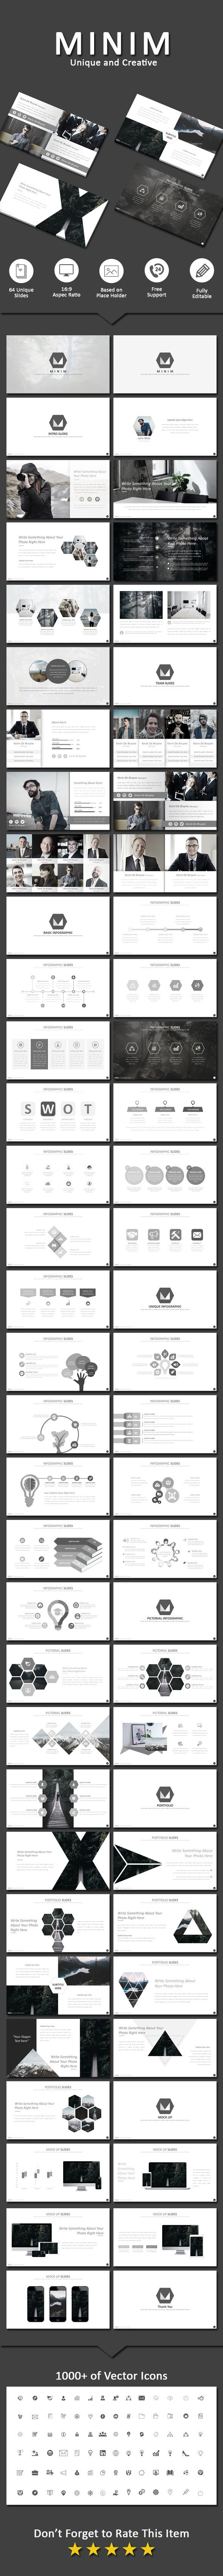 Minim - Business PowerPoint Templates Download here: https://graphicriver.net/item/minim/19792790?ref=classicdesignp